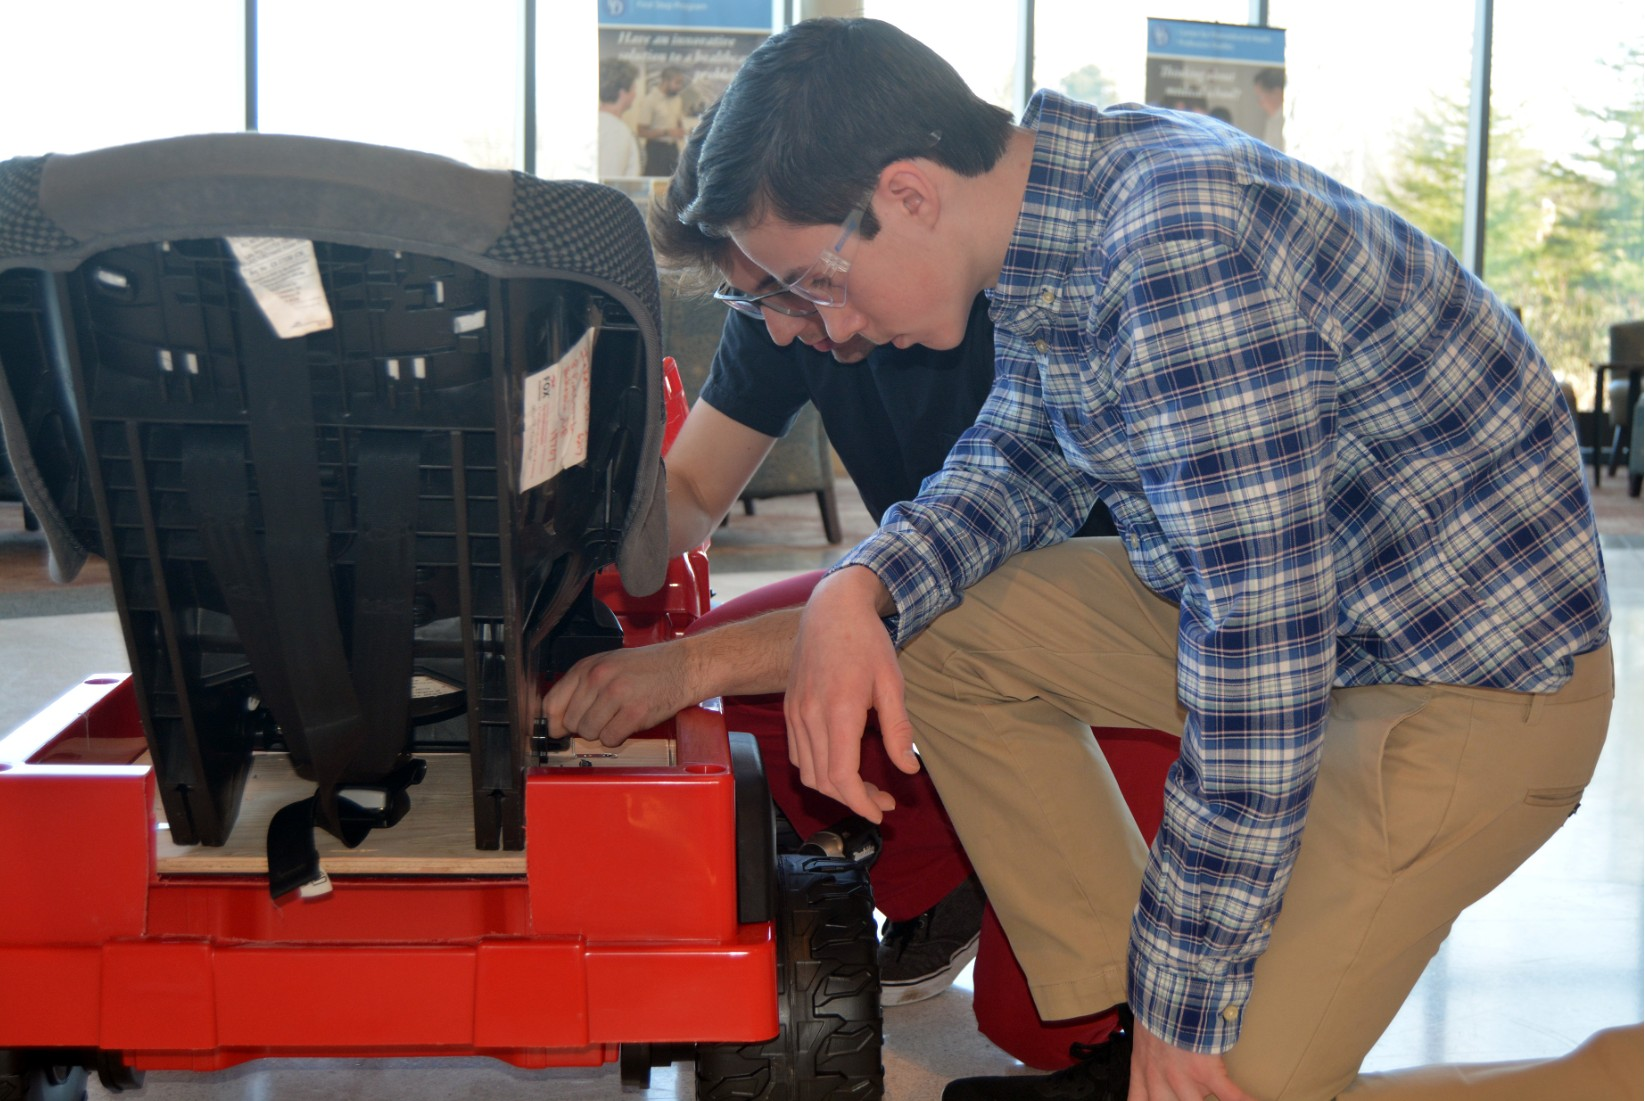 Ongoing UD partnership provides 8th graders with immersive STEM experience